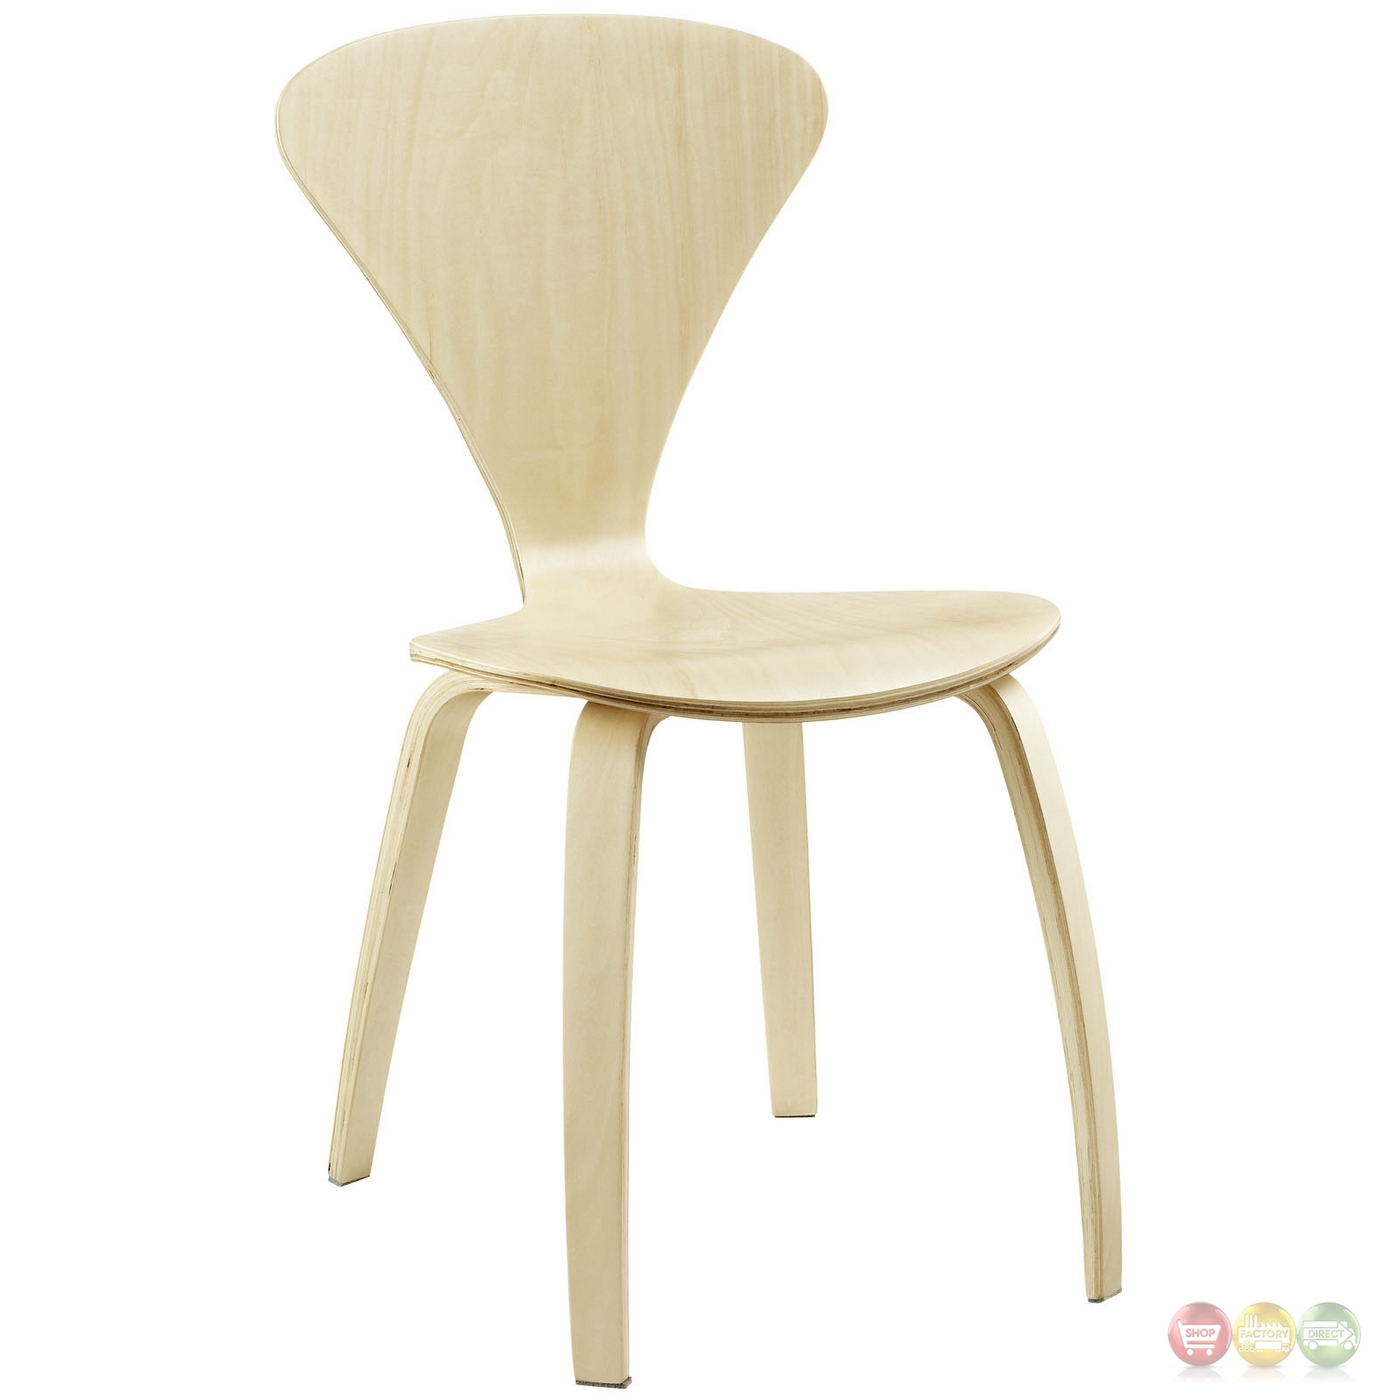 Vortex Modern Wood Panel Dining Chairs With Lacquered